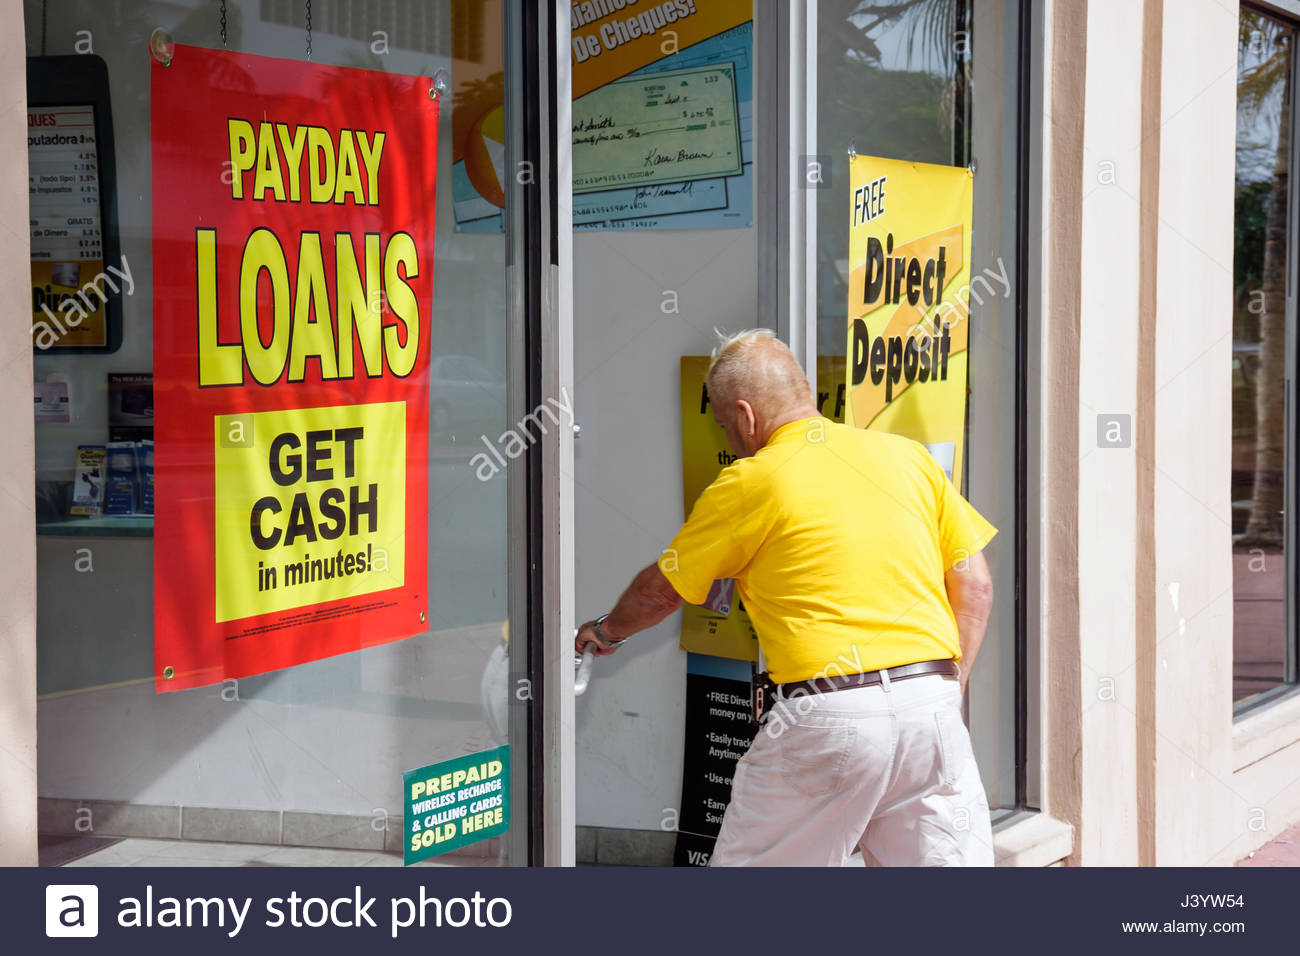 Payday Loans in Miami, Florida: Subprime Report